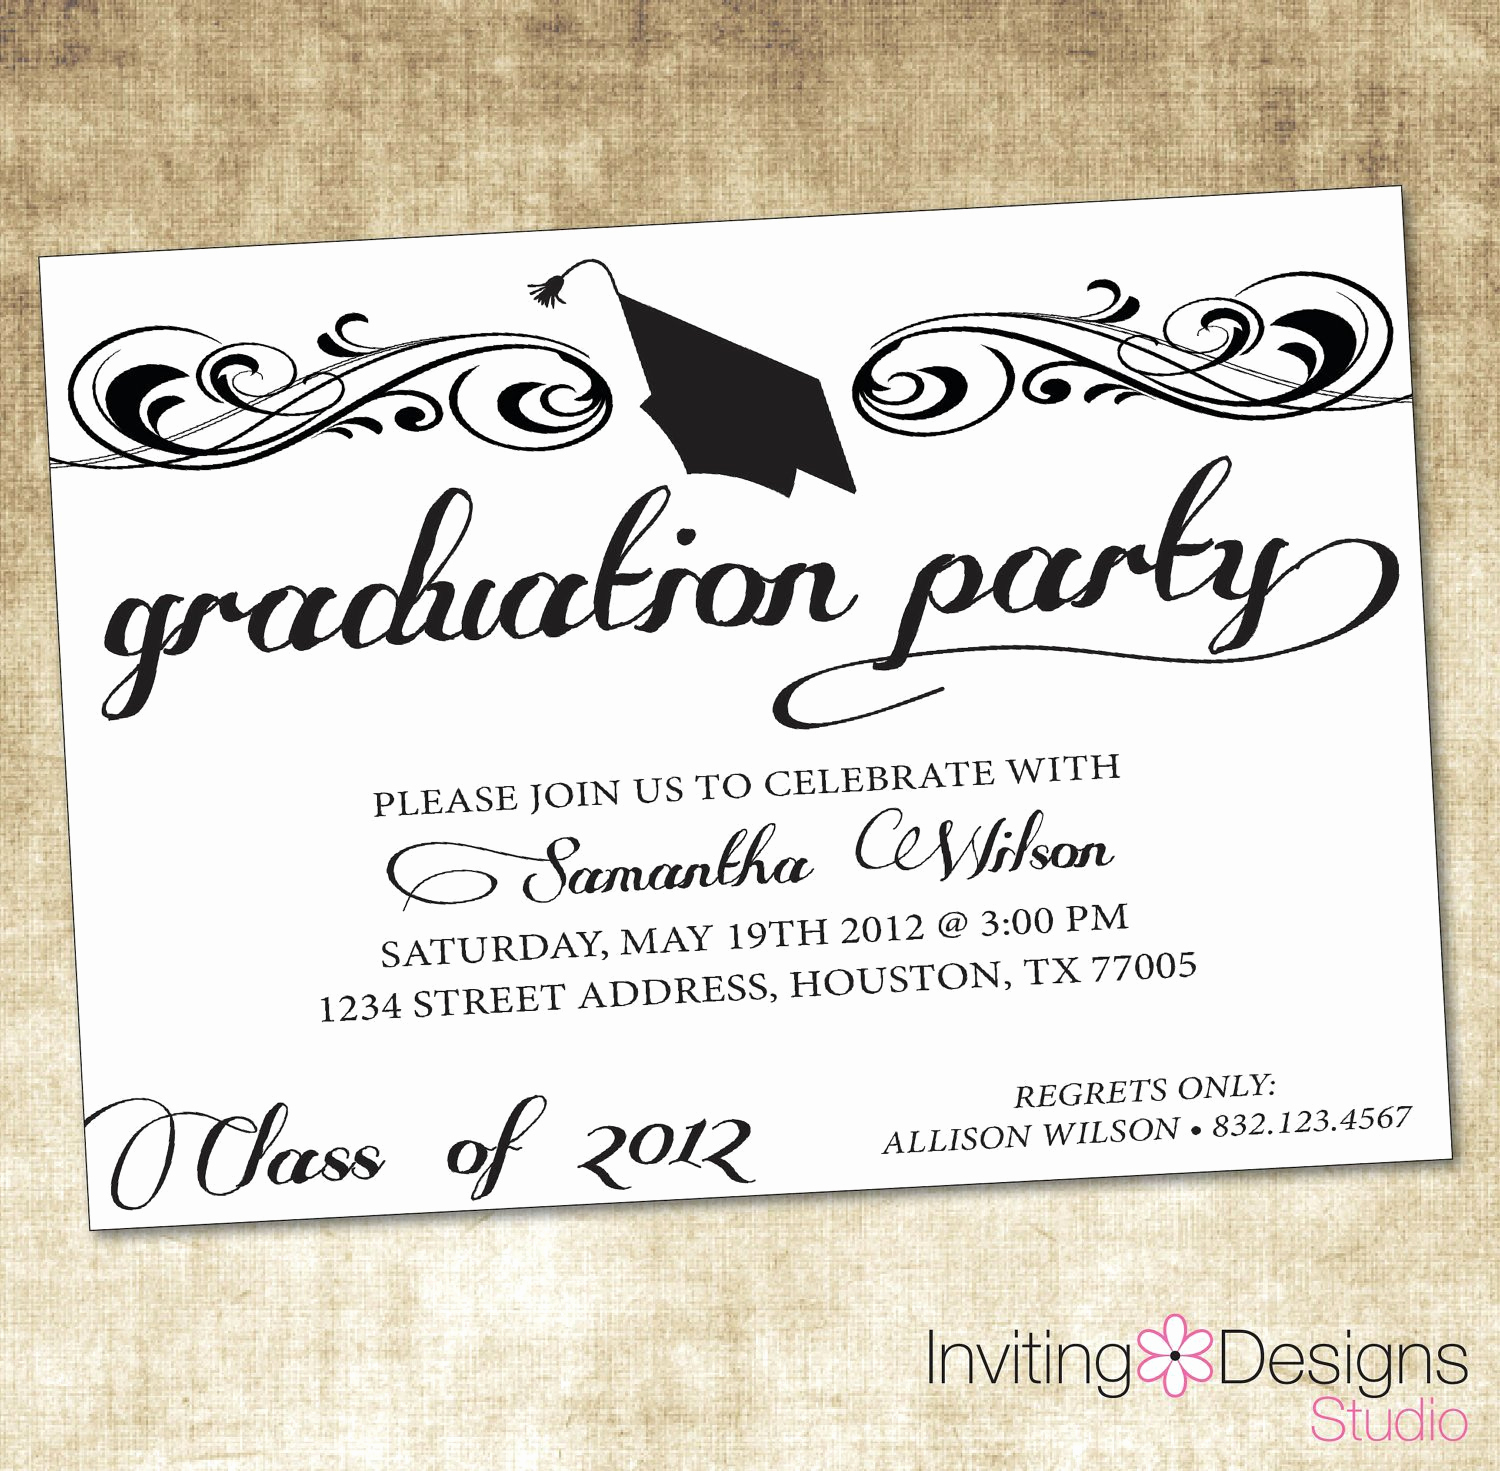 Graduation Party Invitation Wording Ideas Inspirational Free Graduation Invitation Templates Free Graduation